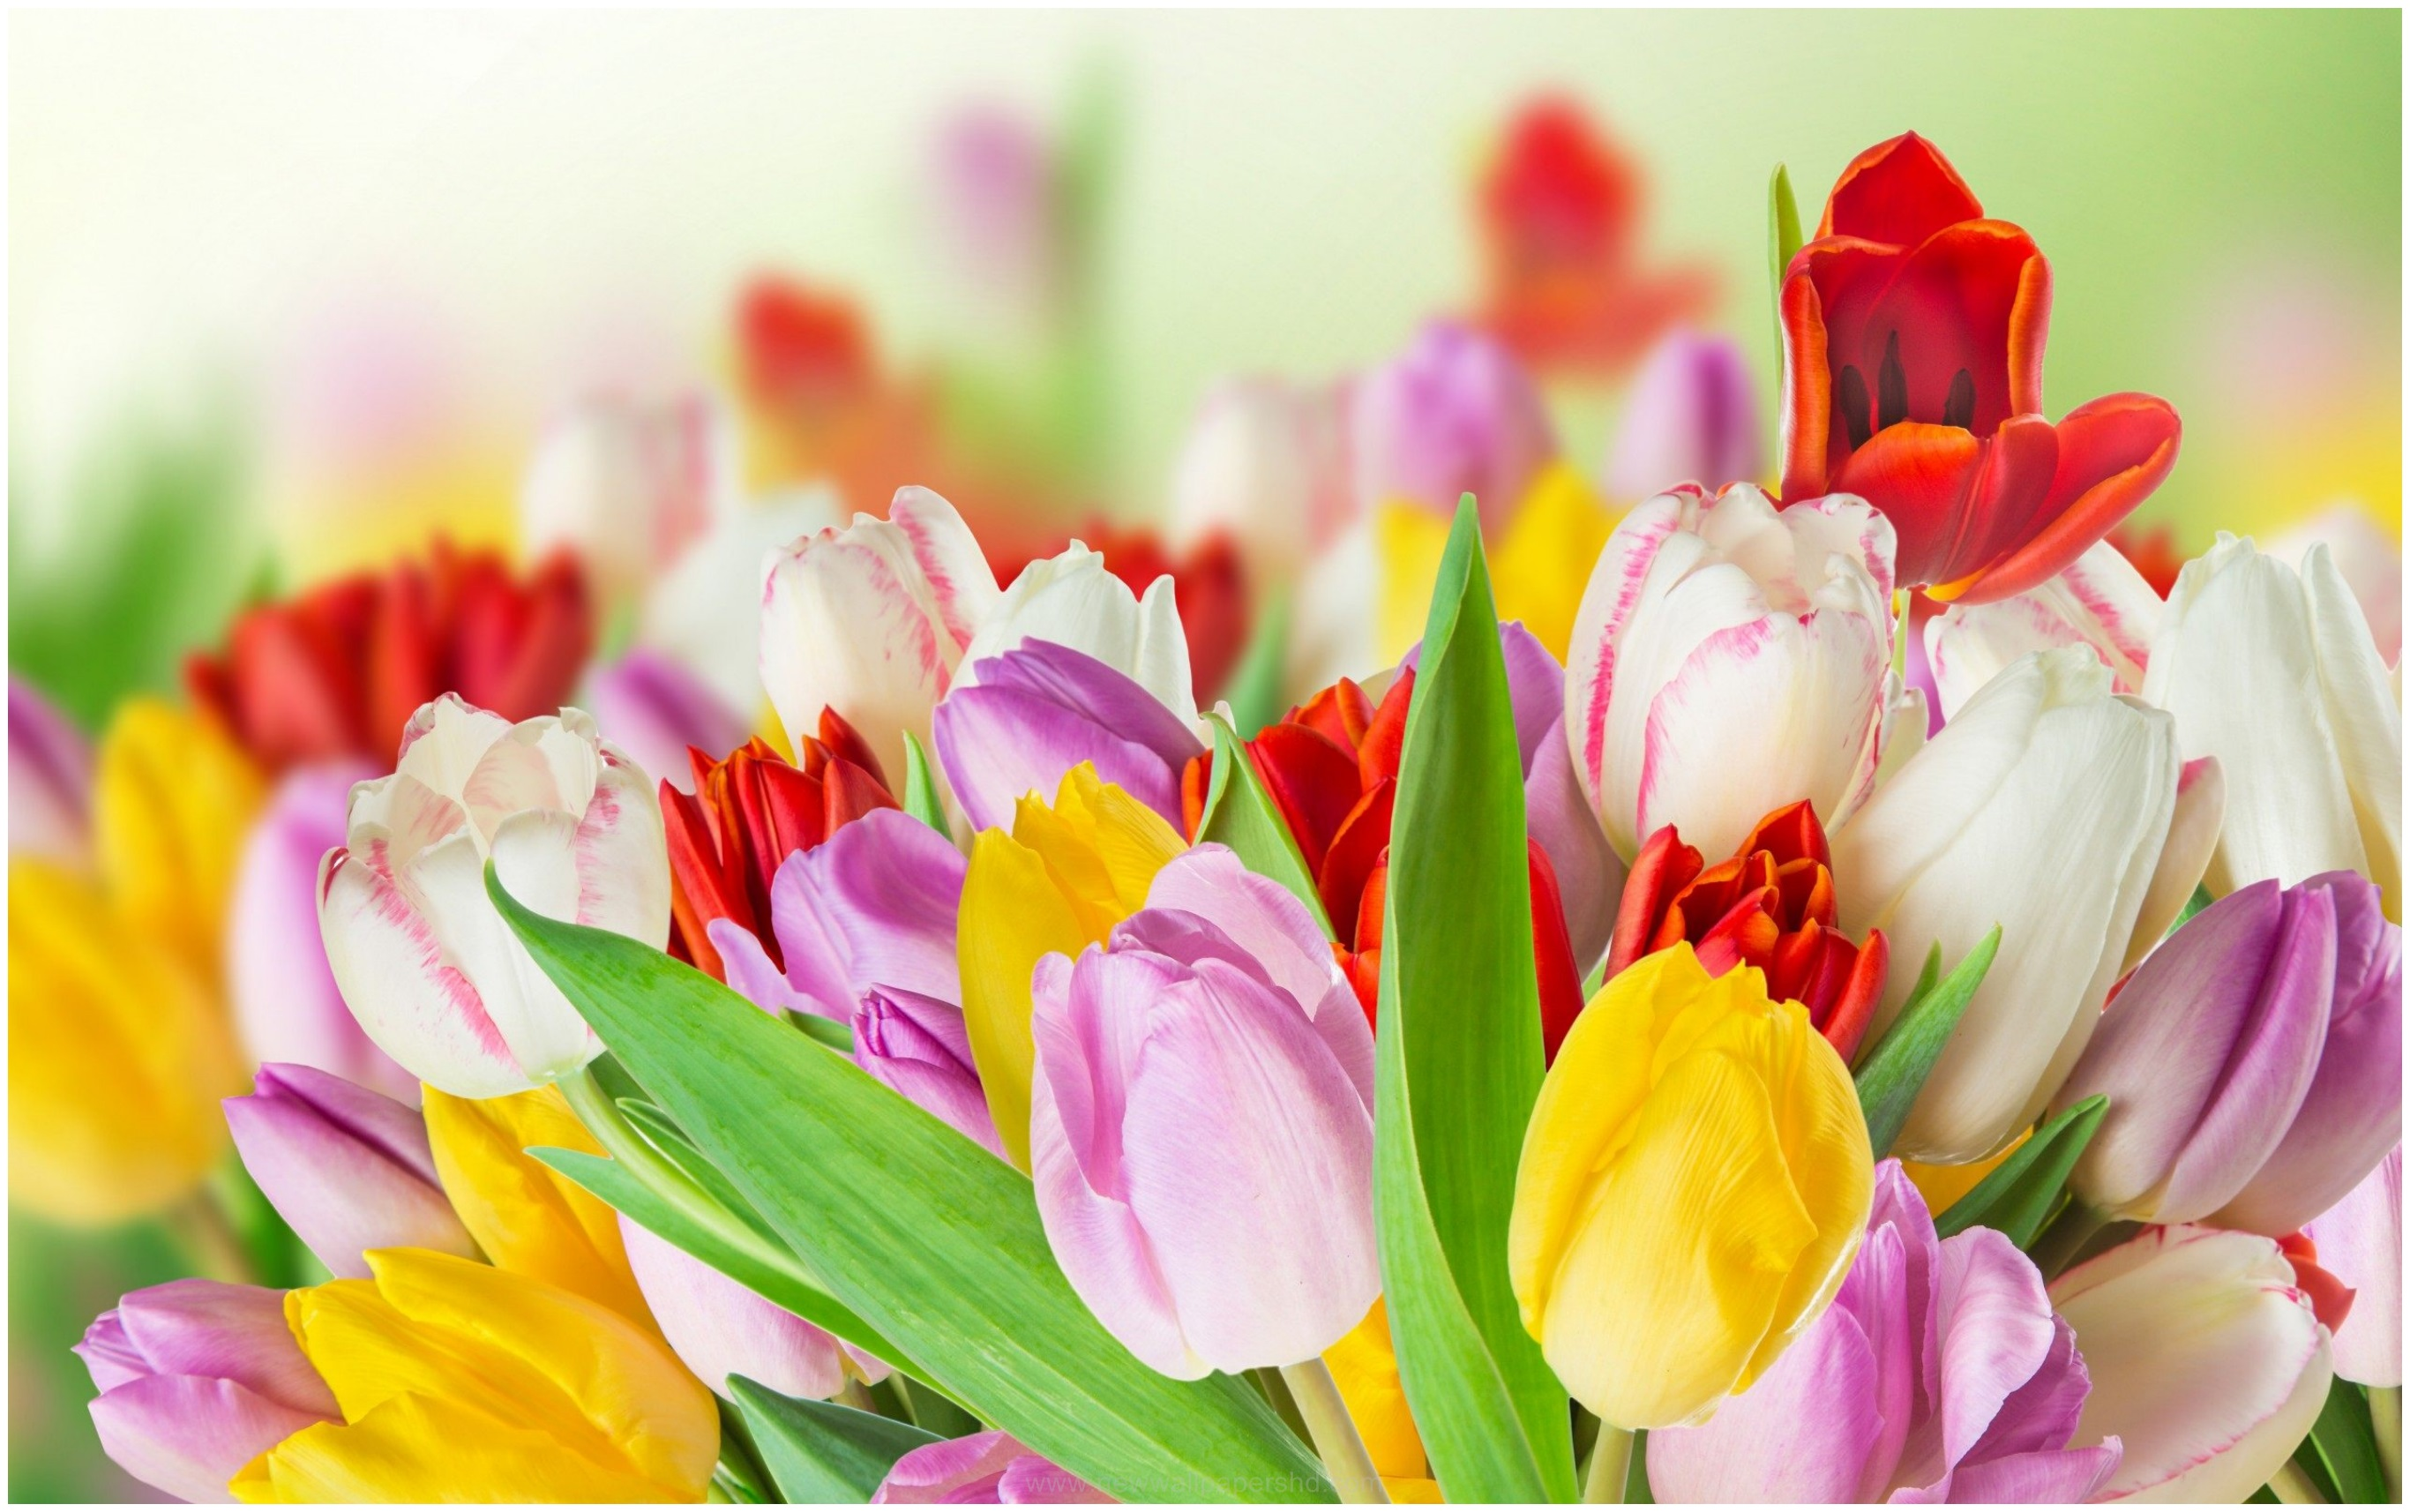 SPRING TULIPS COLORFUL FLOWERS HD WALLPAPER 9HD Wallpapers 2732x1714